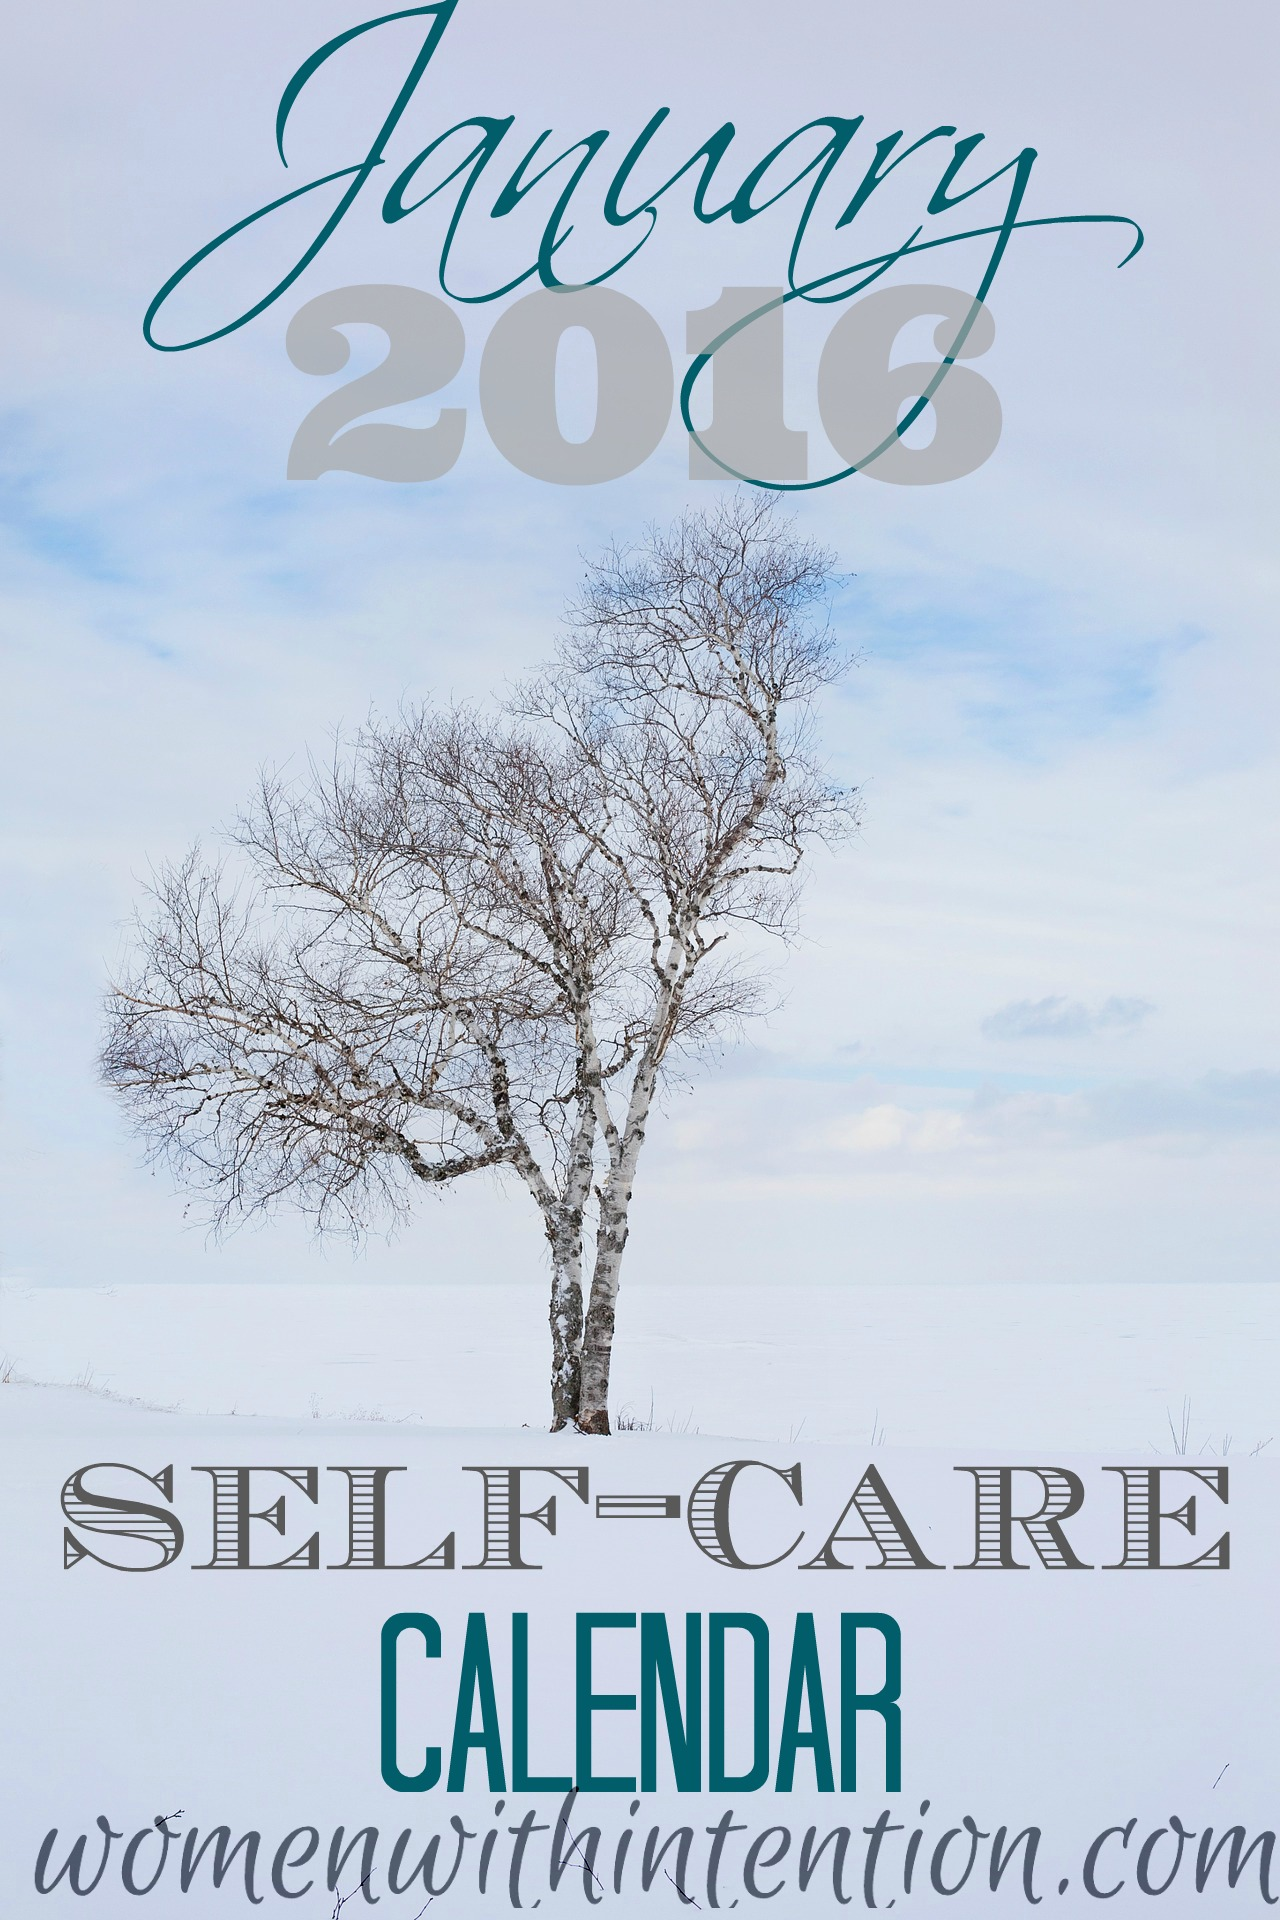 Self Made Calendar 2016 : January self care calendar women with intention